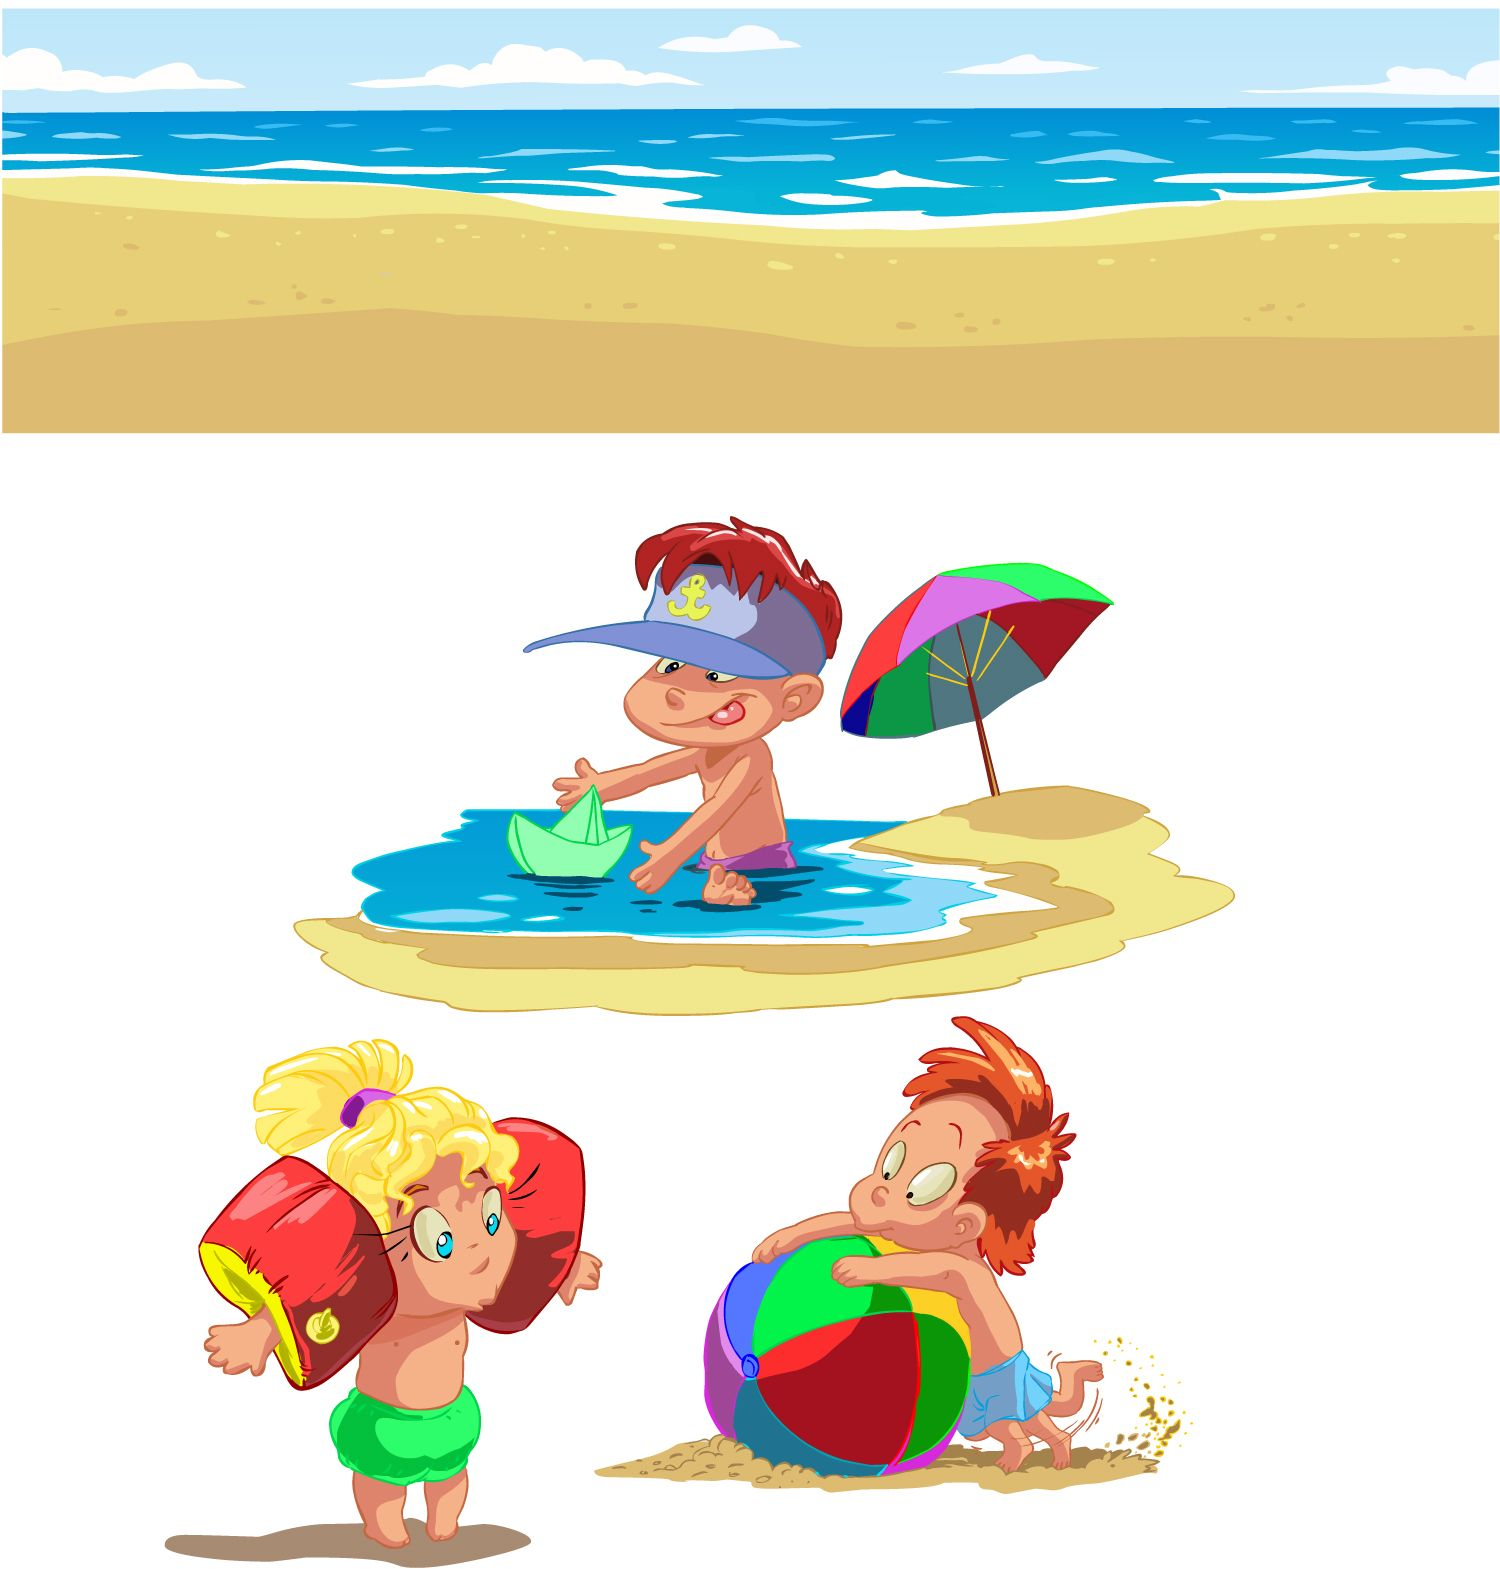 free vector cartoon children summer beach vector graphic available for free download at 4vectorcom - Download Cartoons For Kids